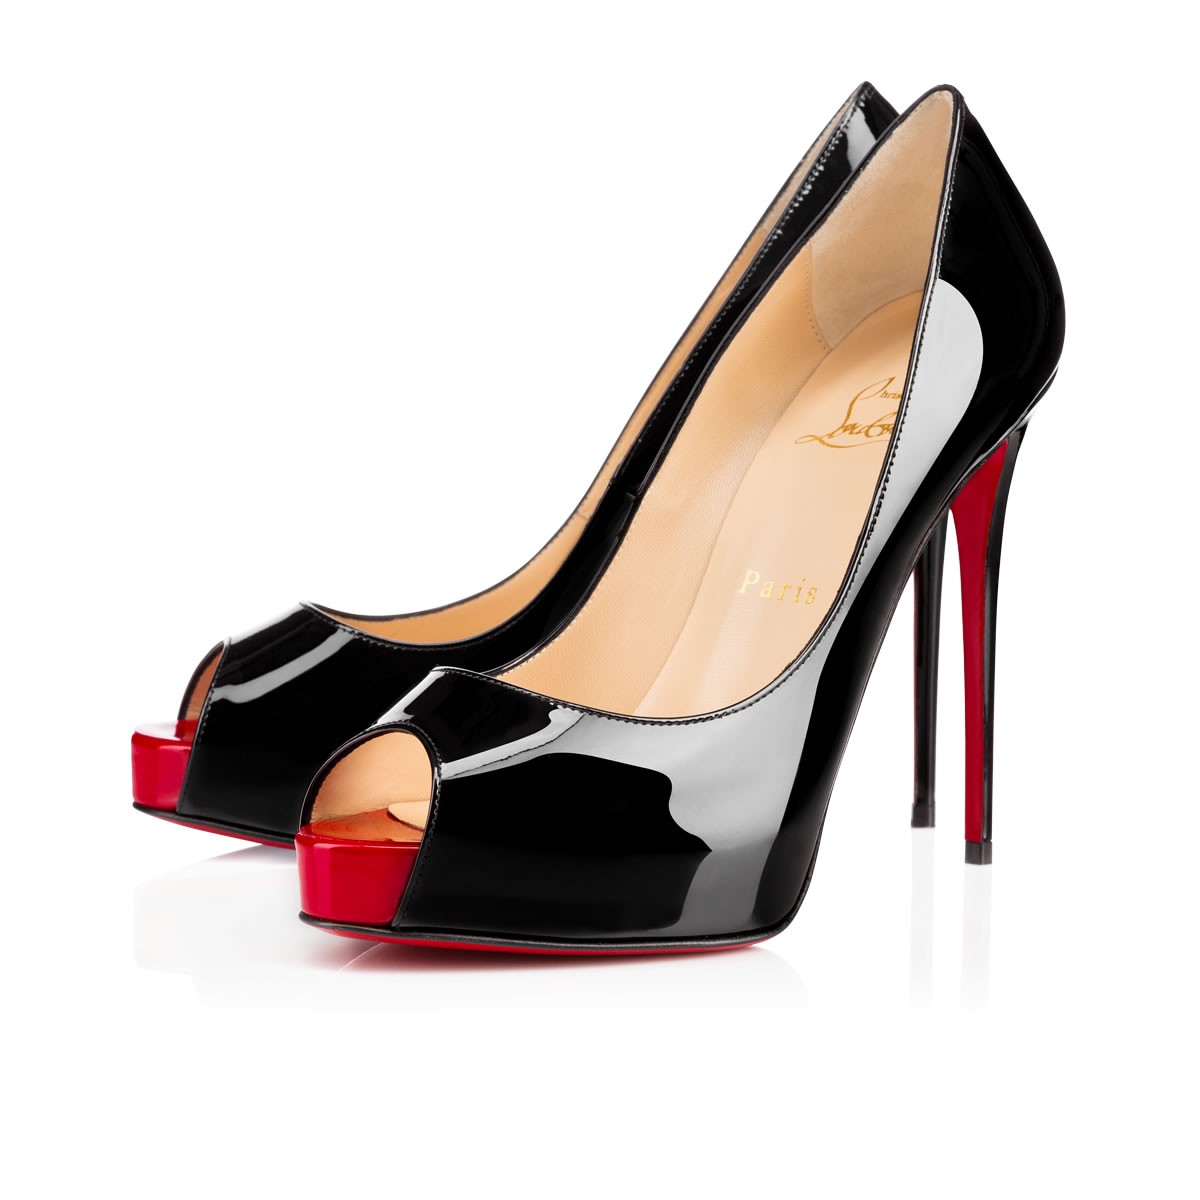 ea40d75fc01 Shoes - New Very Prive - Christian Louboutin ...